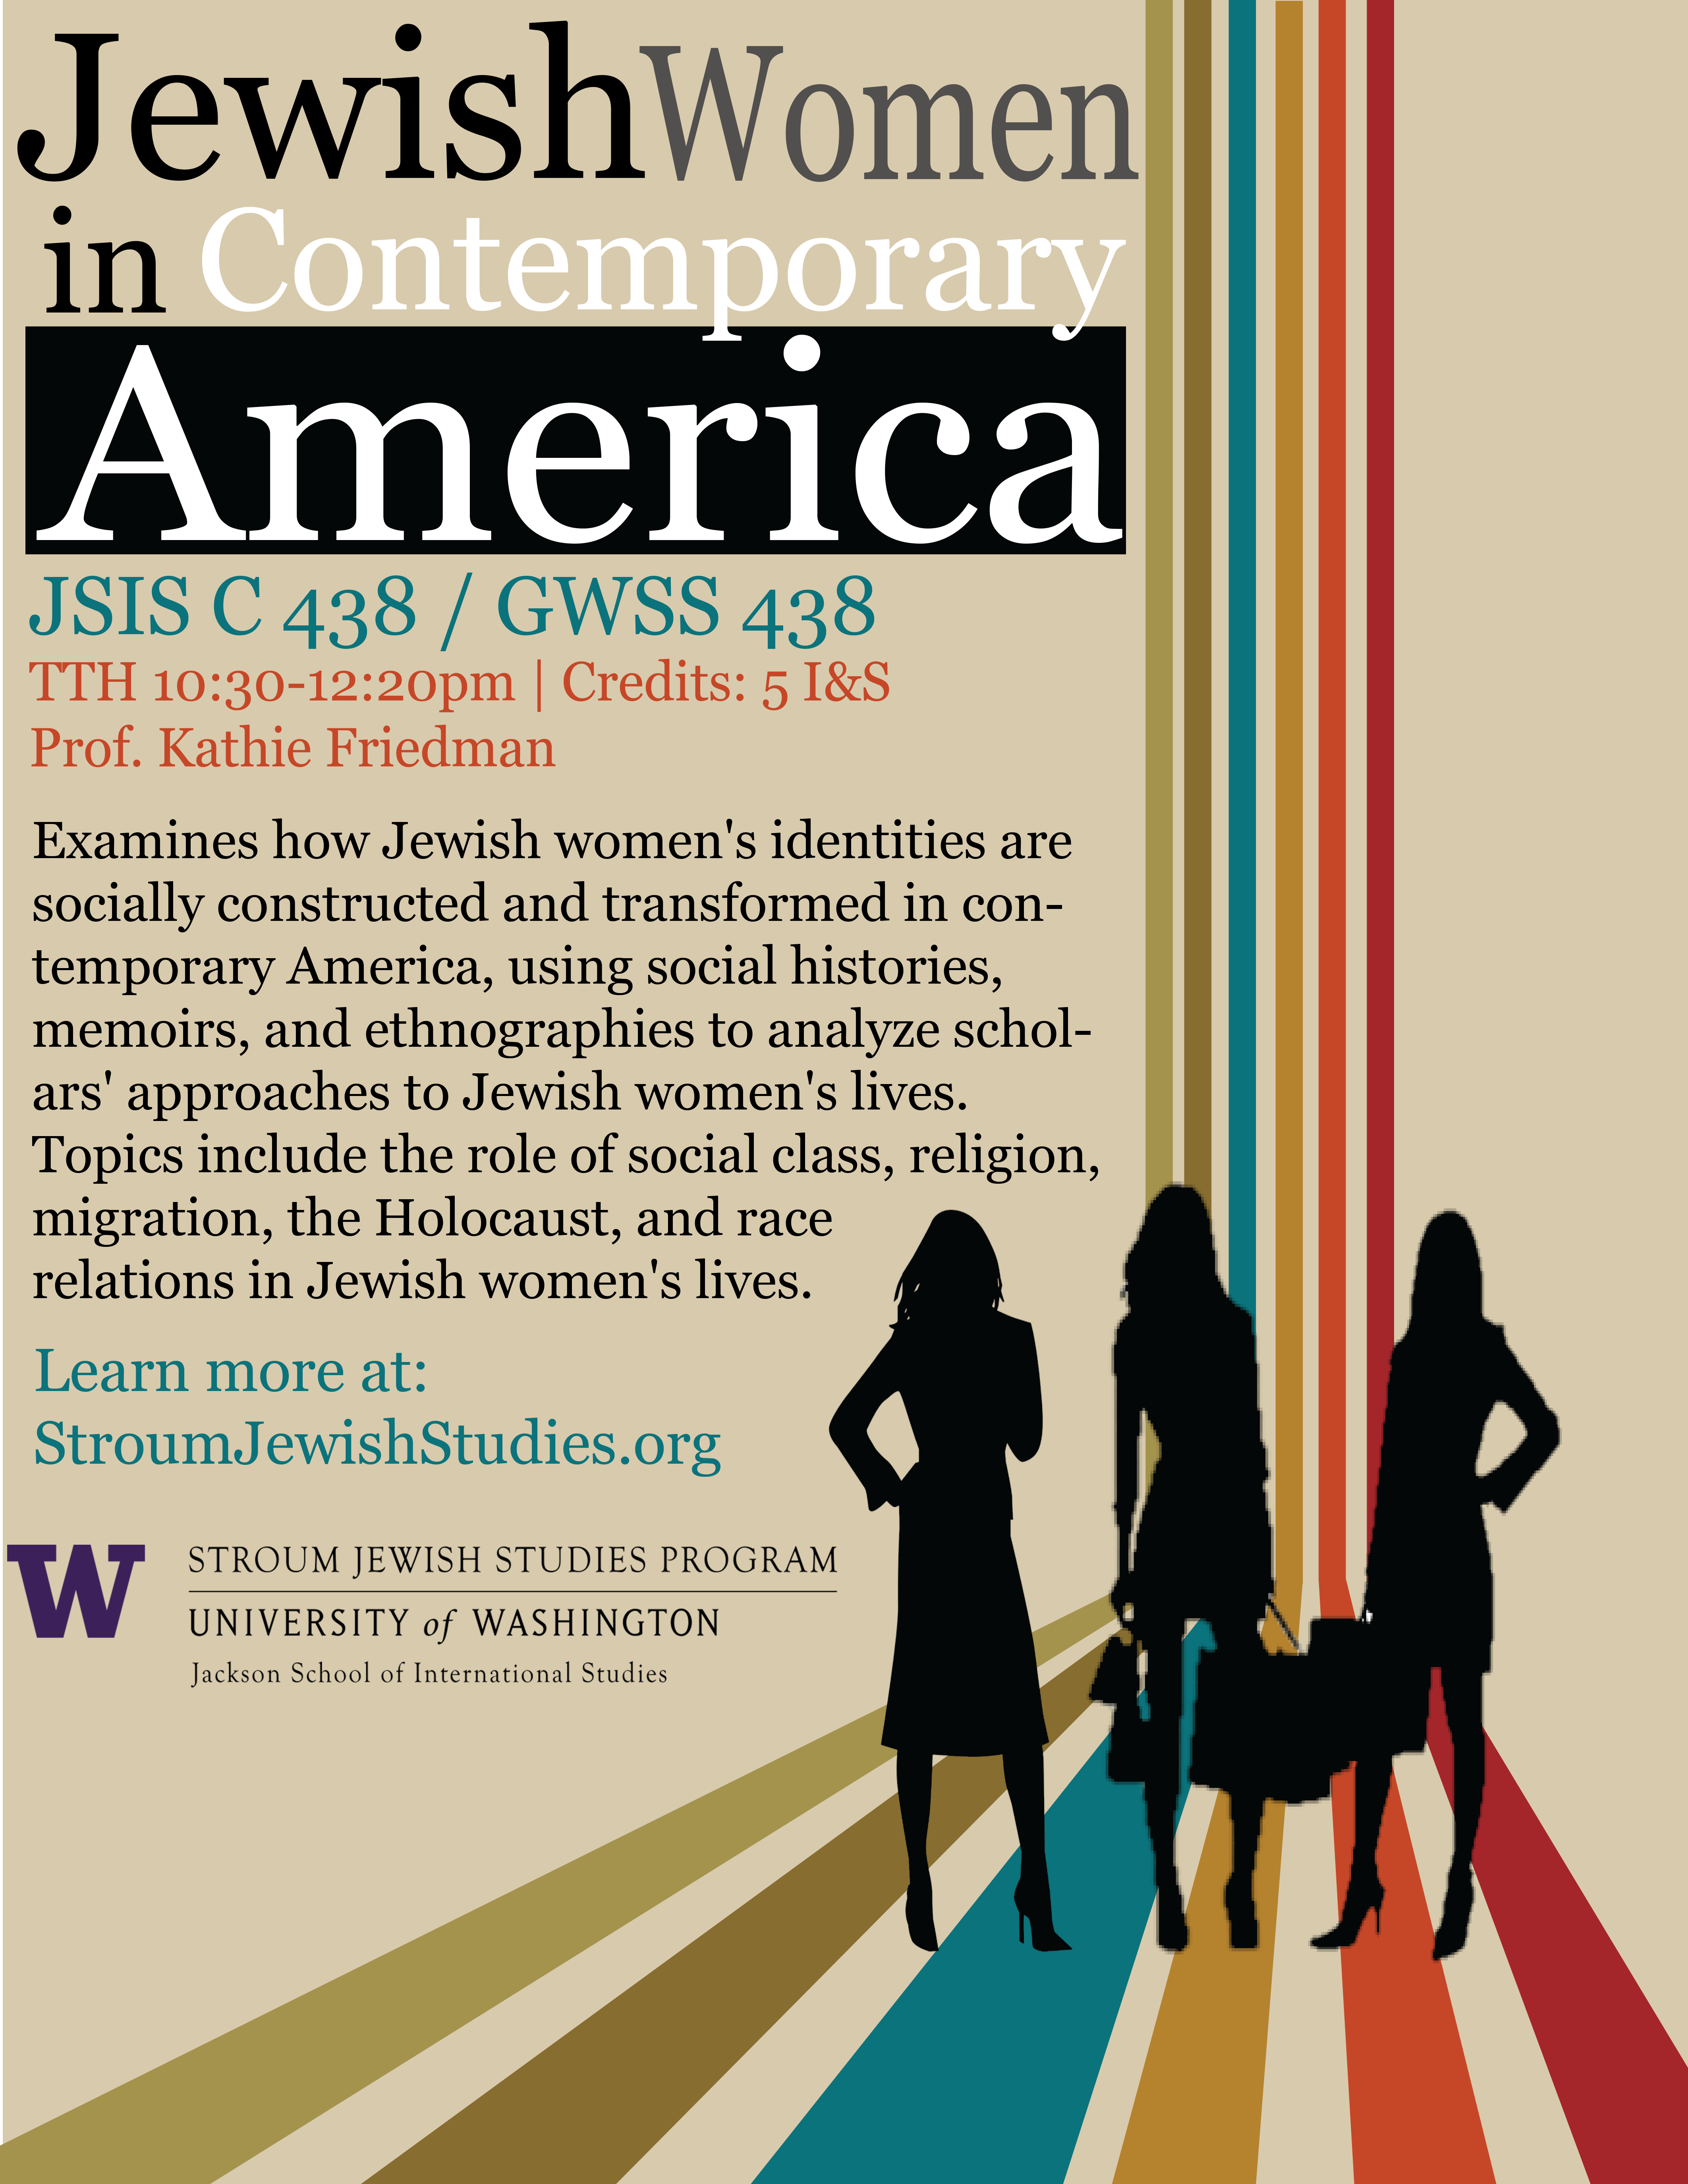 jewish single women in copper center New jersey jewish singles, women 36-45  home login register contact us jewish women age 36-45 in new jersey non-member results limited page: of 16 next login for % match dancingqueen169 36 year old single jewish female from belleville, nj  45 year old single jewish female from cherry hill, nj page:.